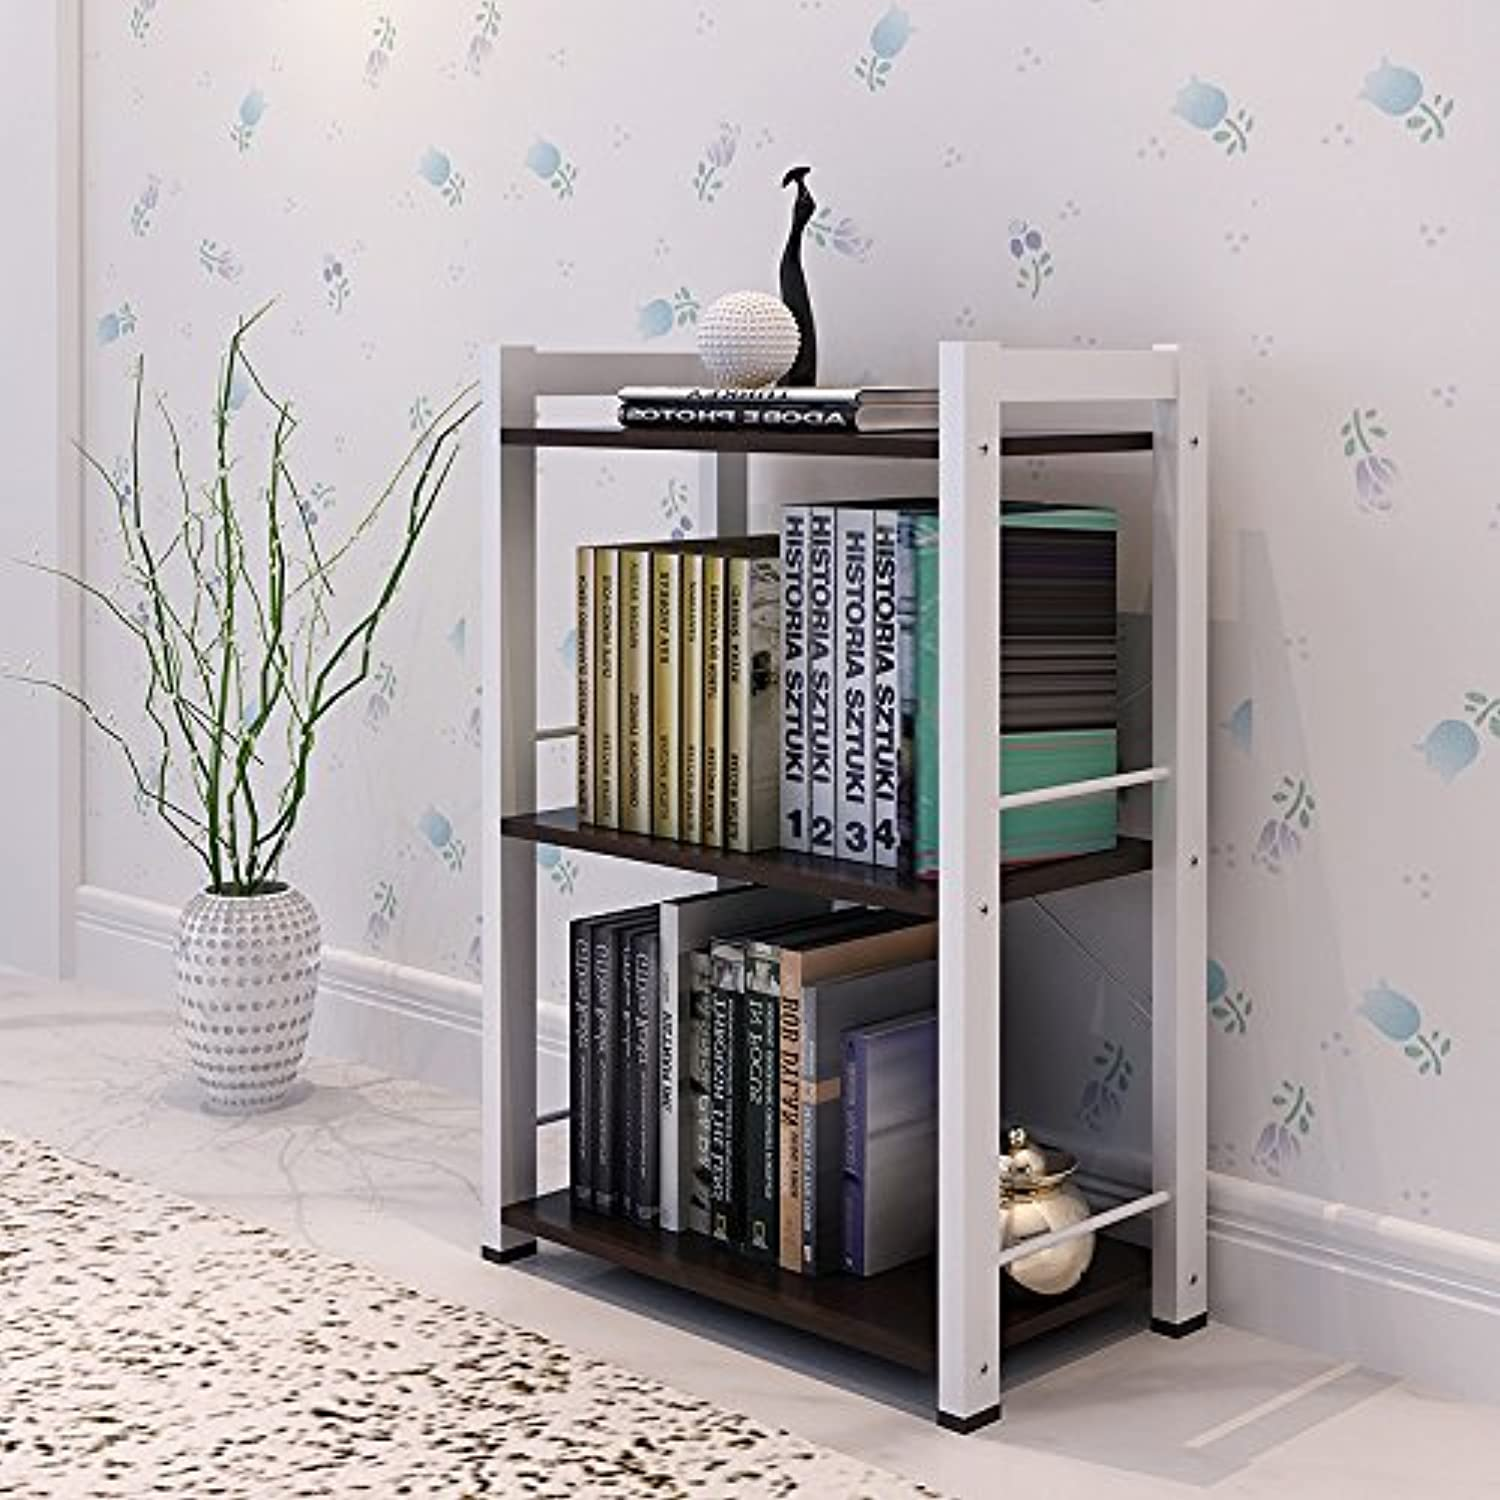 Creative combination of modern minimalist bookshelves bookcase Easy Storage Cabinets , 3 layer